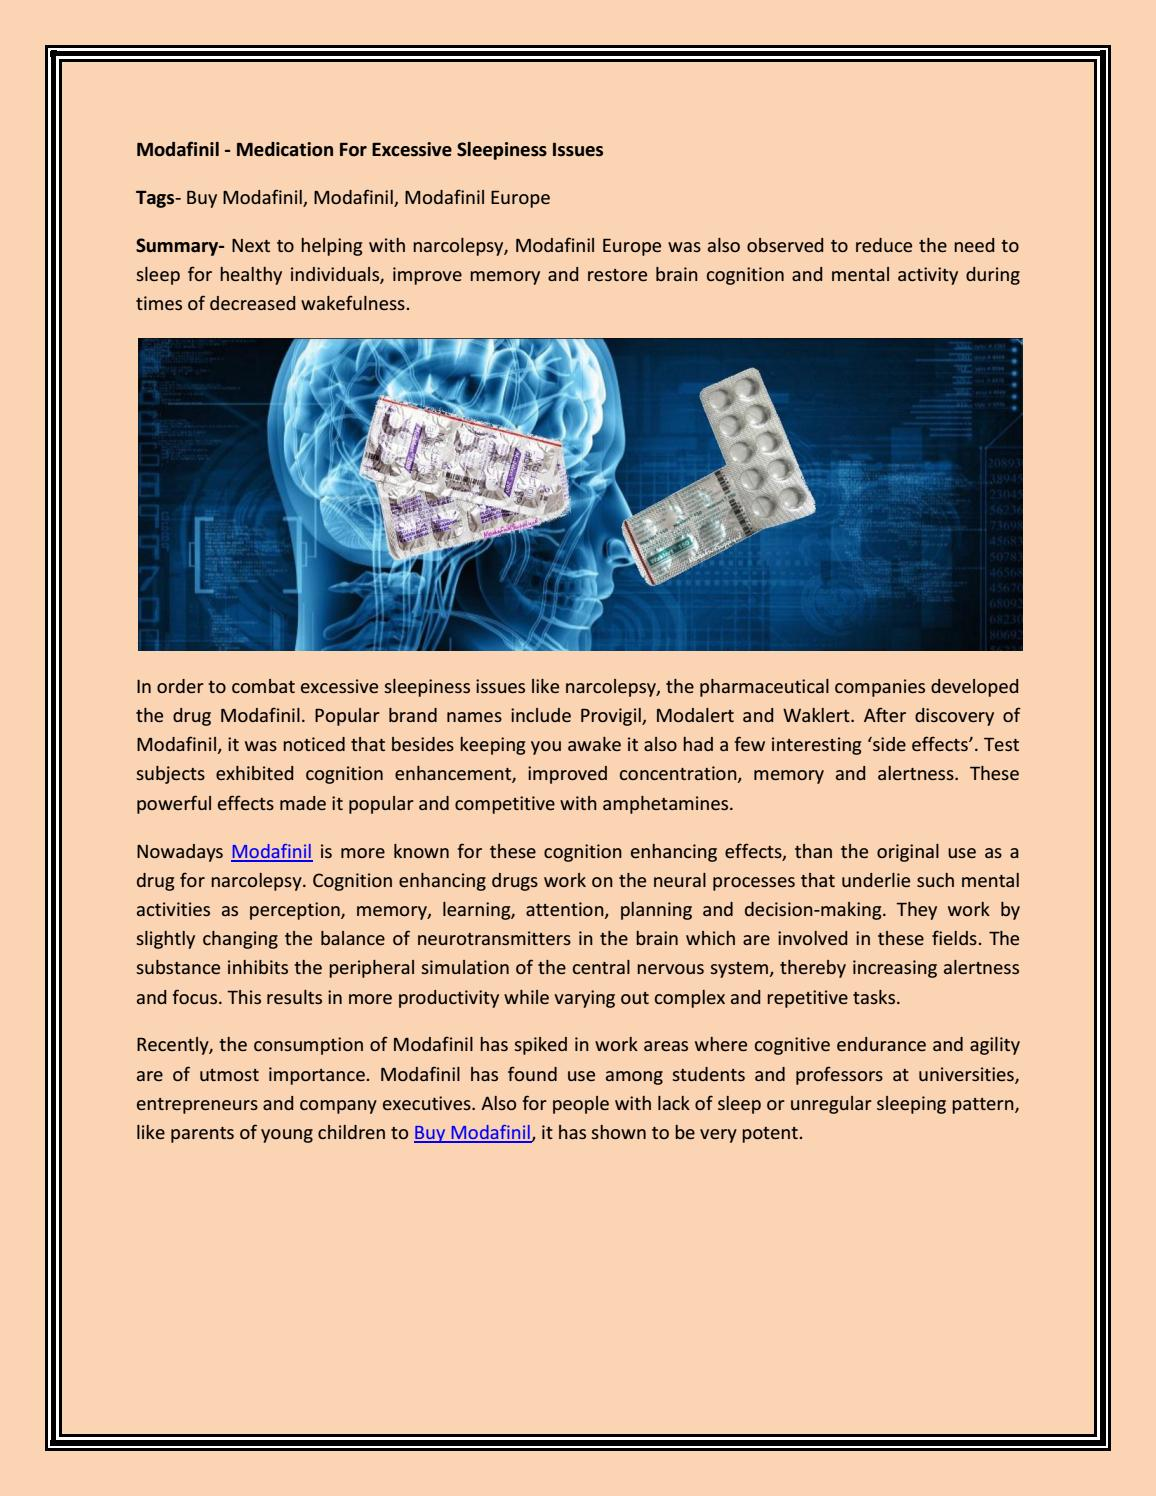 Buy modafinil by Lily Smith - issuu